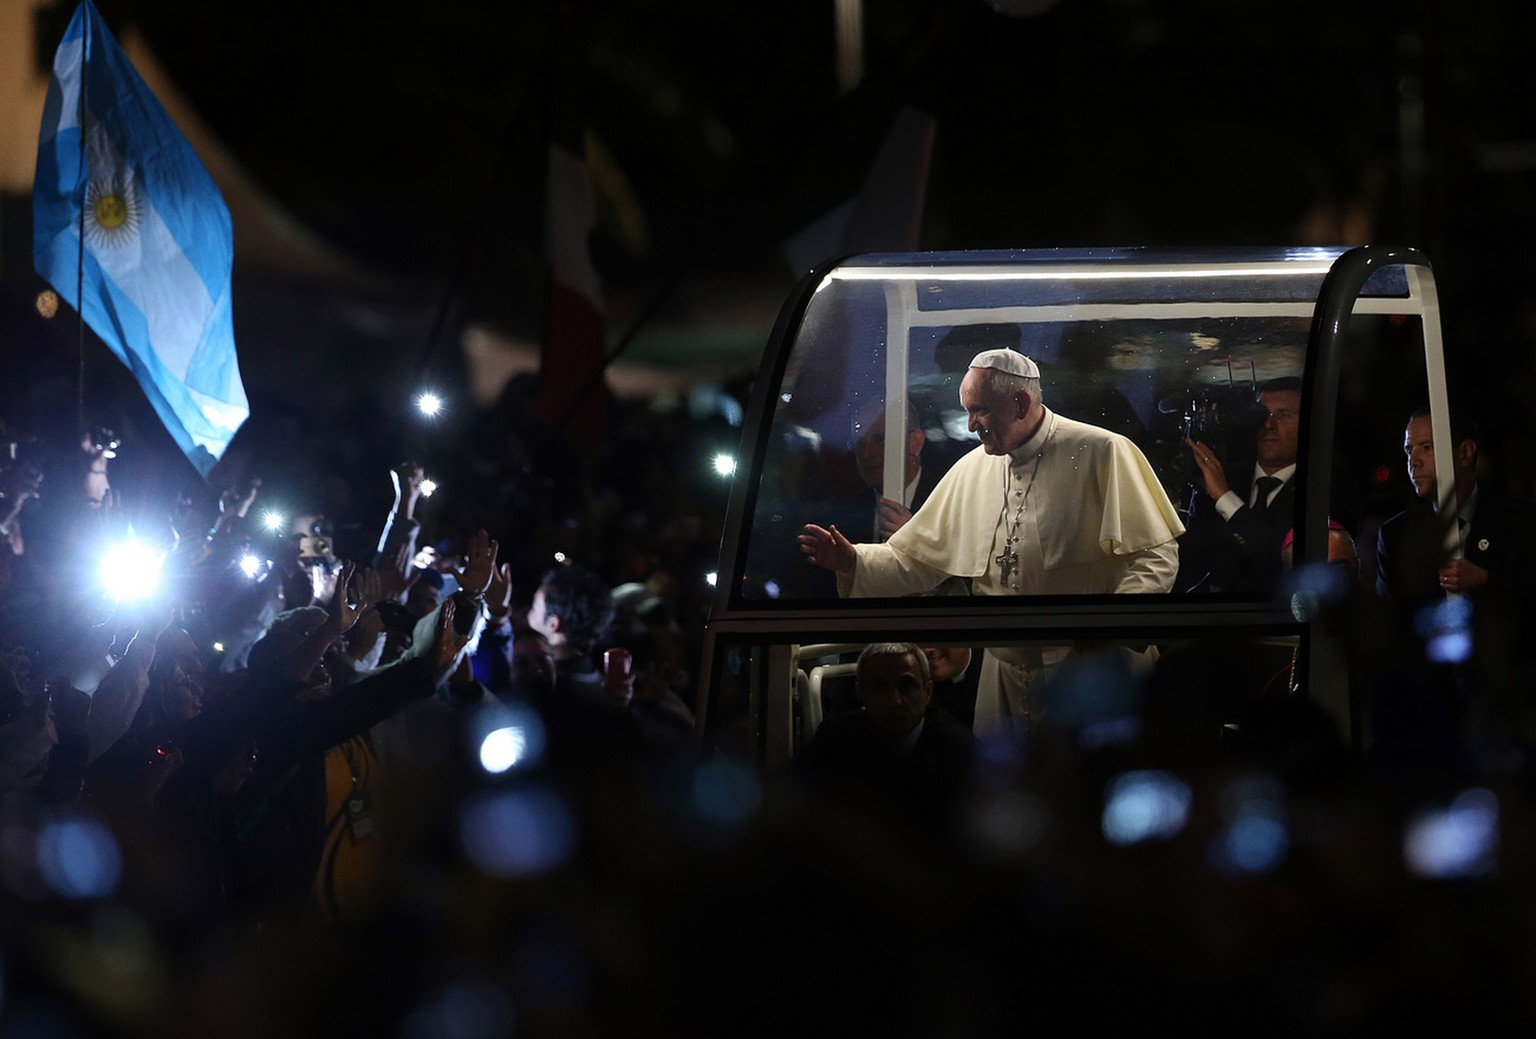 Pope Francis waves as arrives for a World Youth Day celebration on the Copacabana beachfront in Rio de Janeiro, Brazil, Thursday, July 25, 2013. Francis traveled in his open-sided car through a huge crowd in the pouring rain to a welcoming ceremony on Copacabana beach. It was his first official event with the hundreds of thousands of young people who have flocked to Rio for World Youth Day. Vatican officials estimated the crowd at 1 million. (AP Photo/Andre Penner)